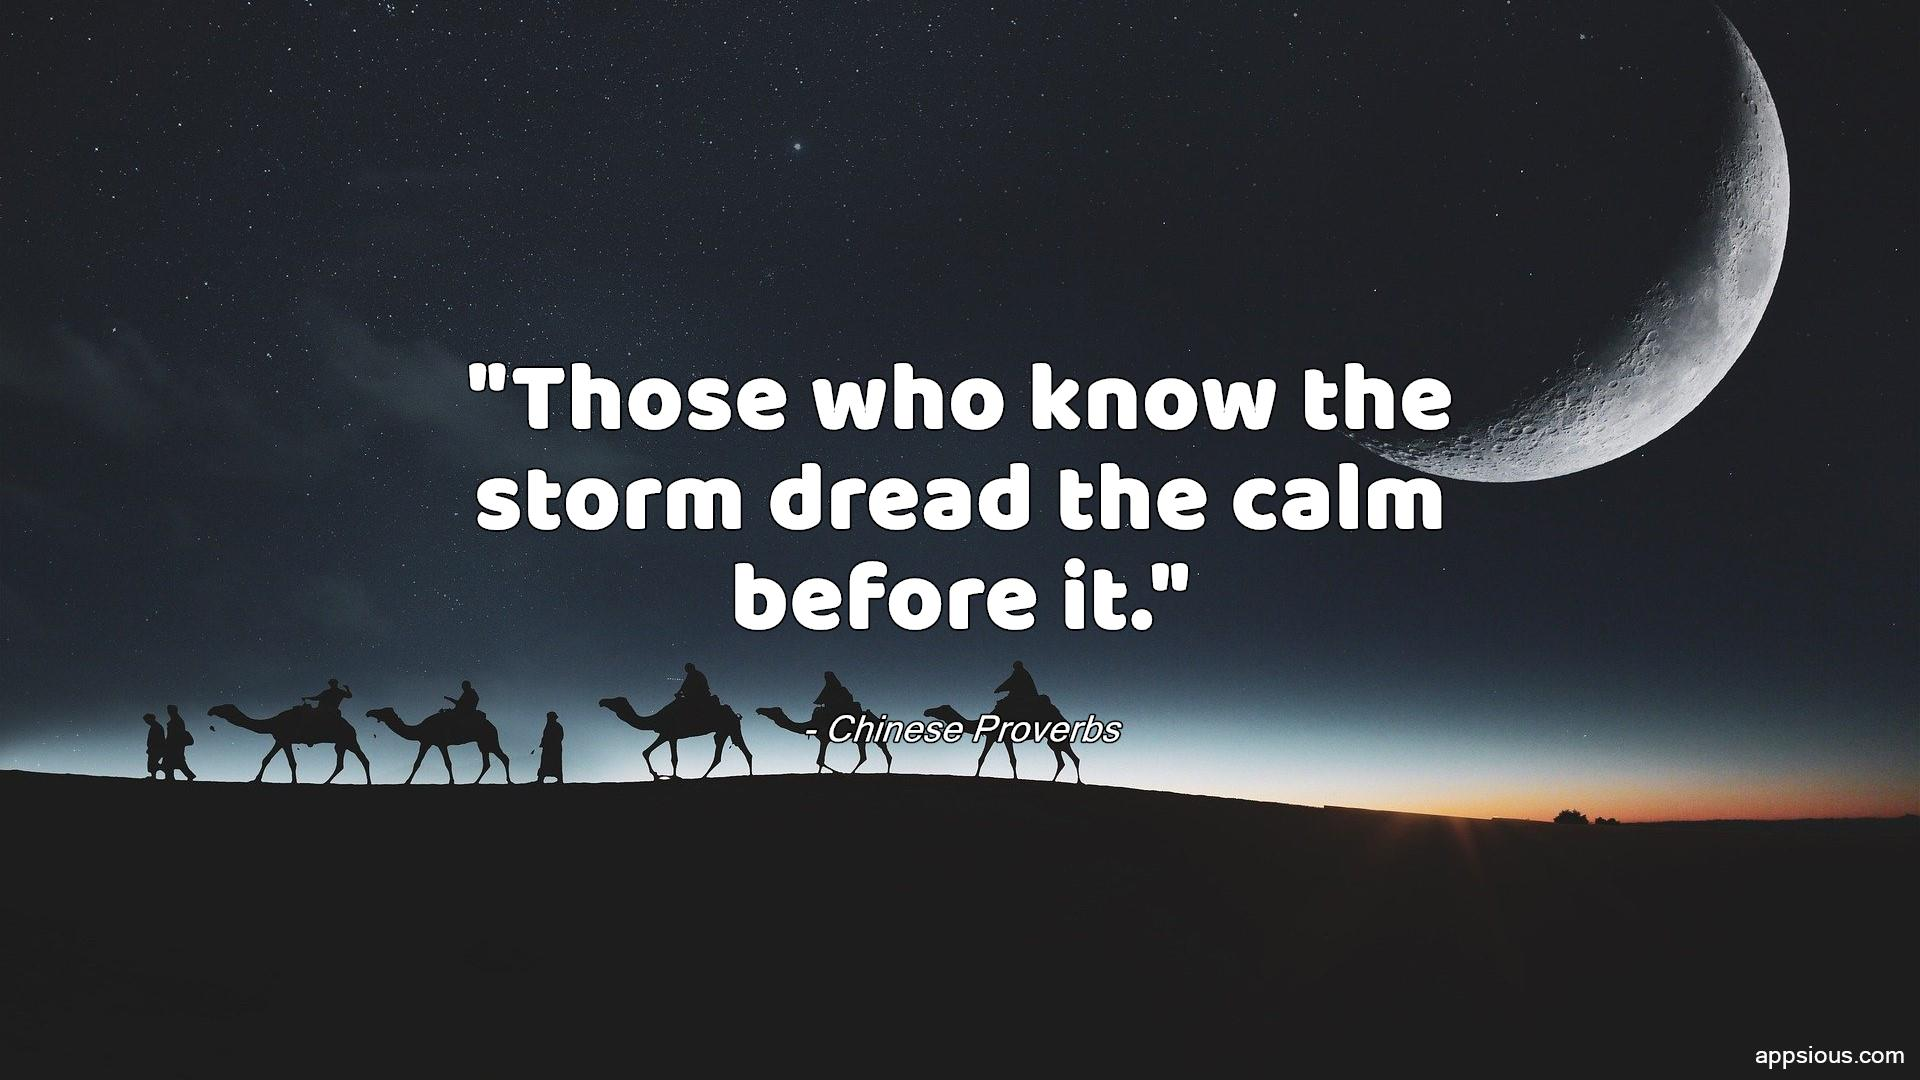 Those who know the storm dread the calm before it.